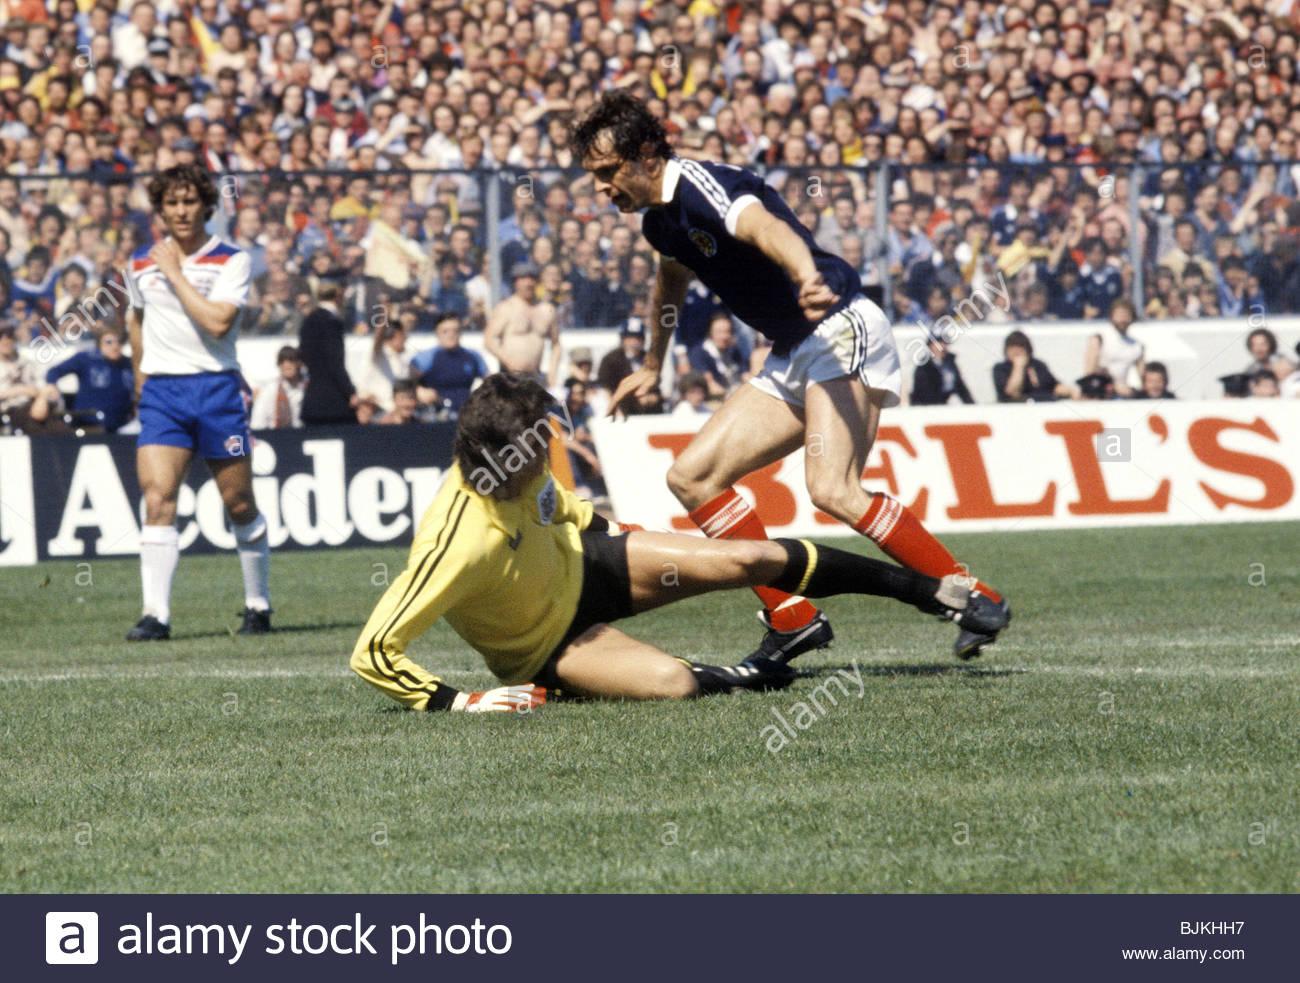 24/05/80 HOME INTERNATIONAL SCOTLAND V ENGLAND (0-2) HAMPDEN PARK - GLASGOW England goalkeeper Ray Clemence challenges - Stock Image